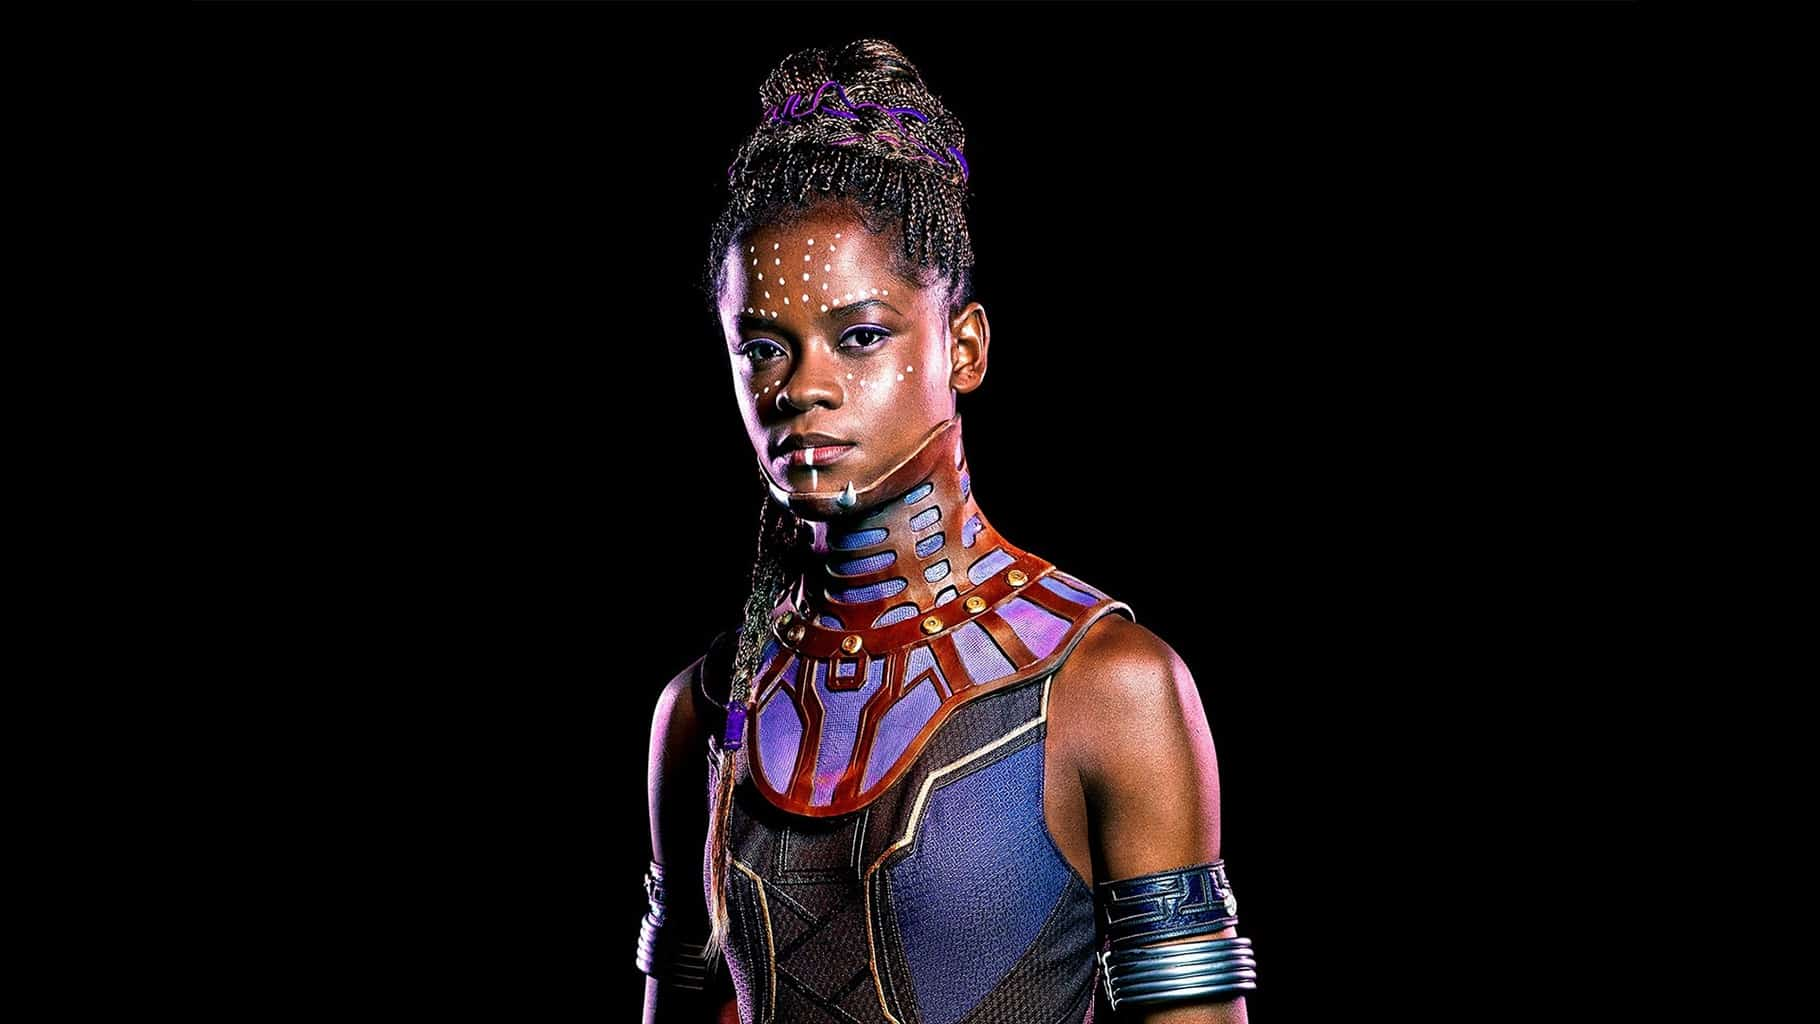 Letitia Wright AKA Shuri from Black Panther